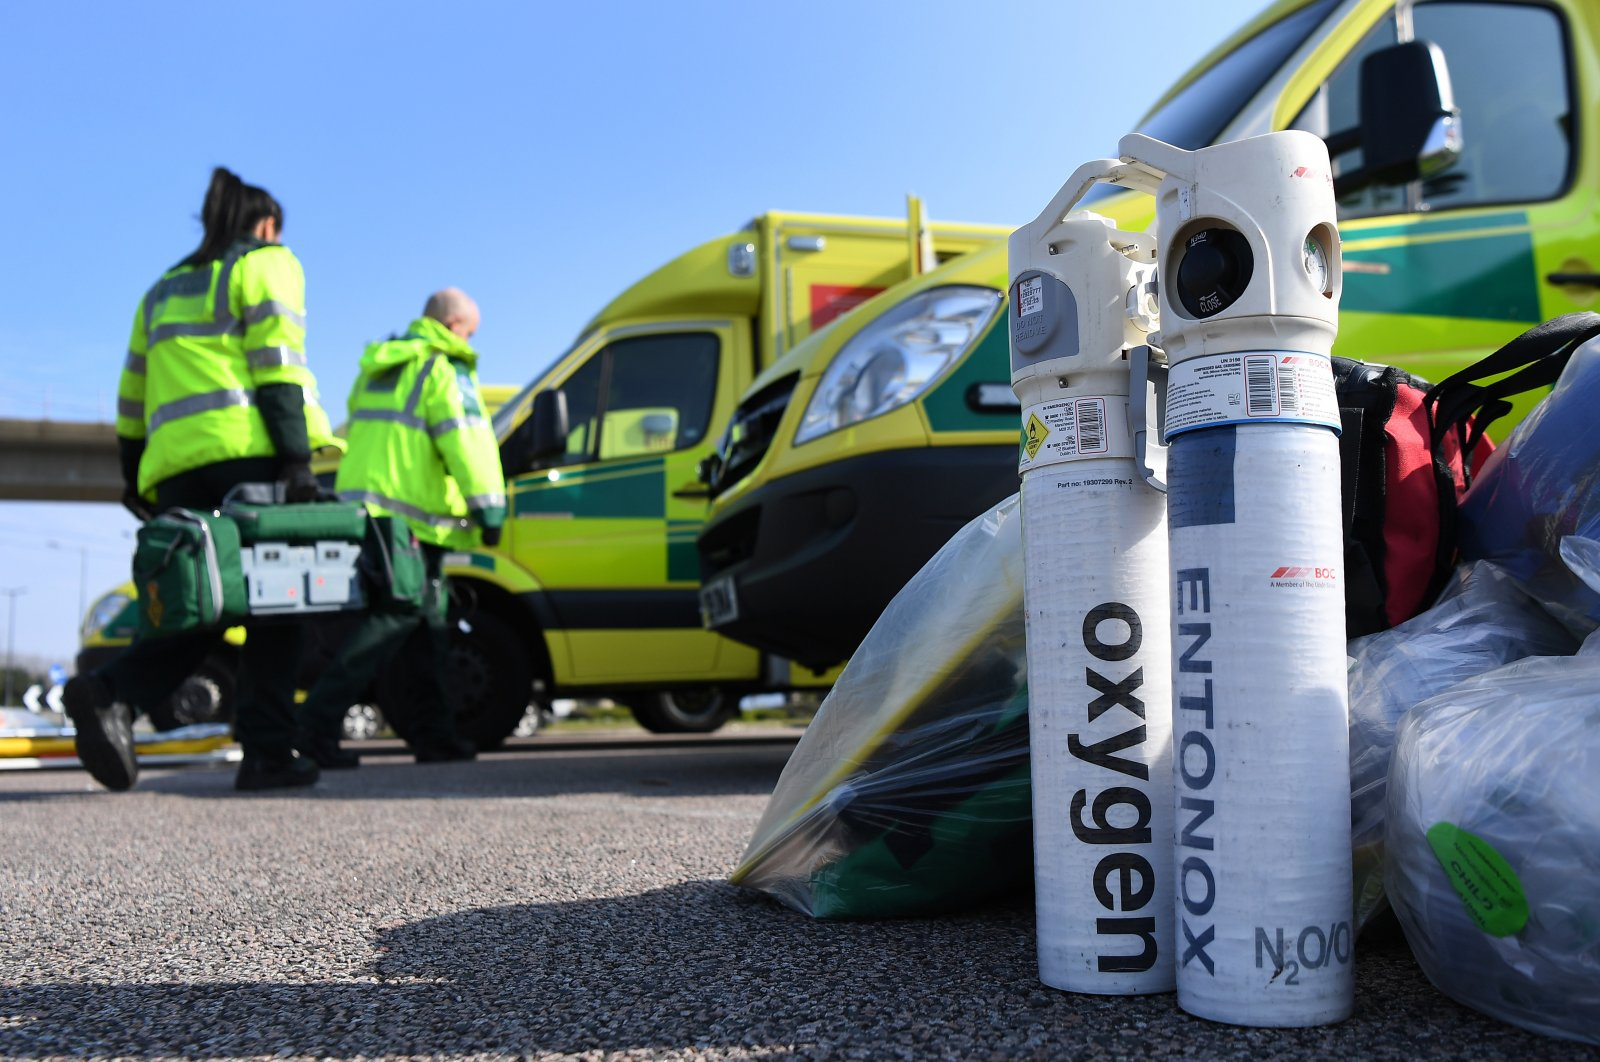 Ambulance workers unload oxygen tanks outside the ExCel Center in London, Saturday, March 28, 2020. (EPA Photo)